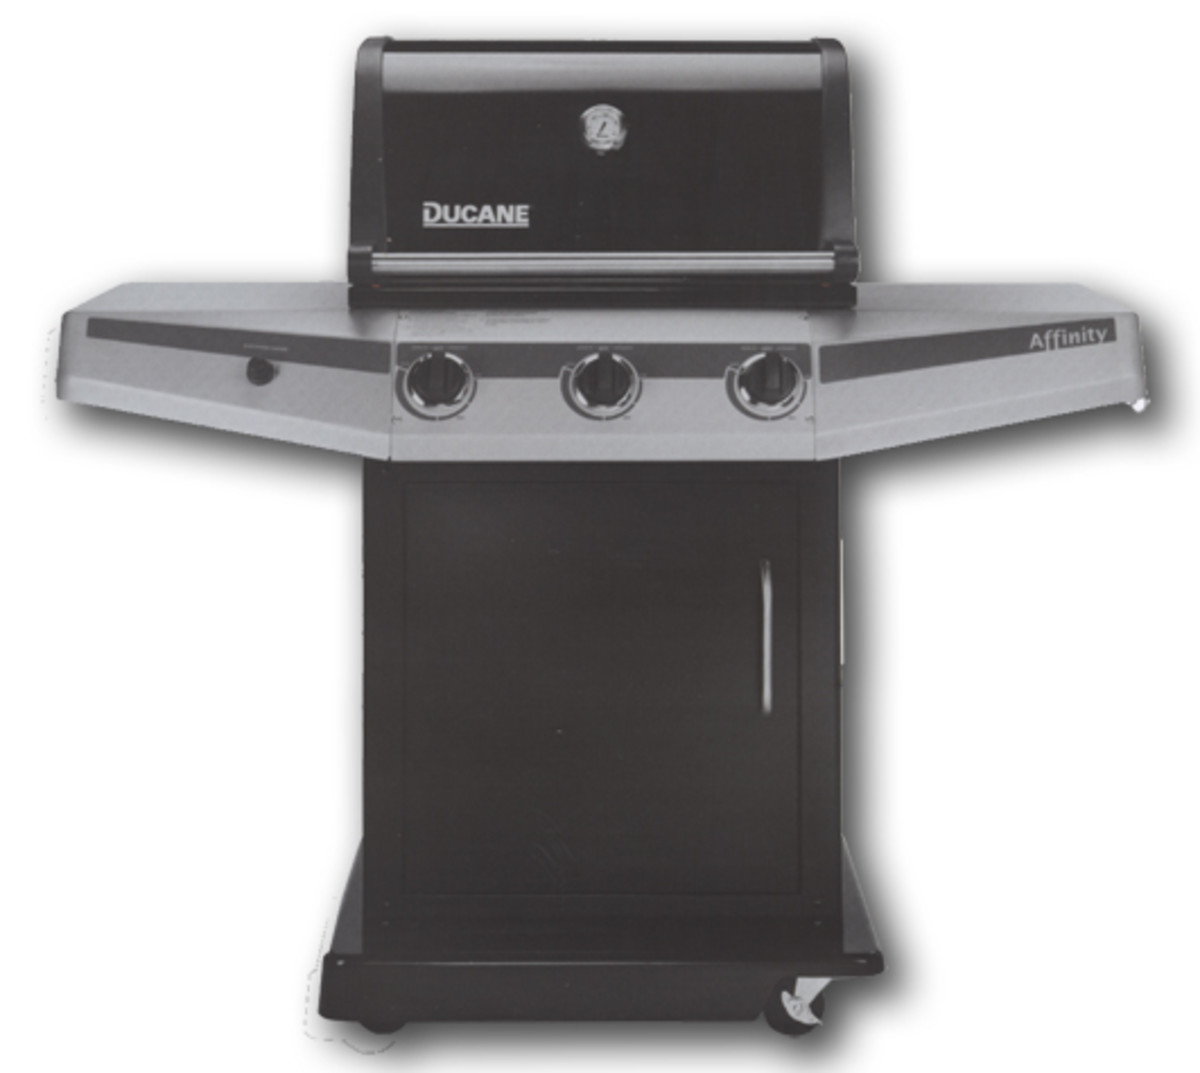 Ducane 2010 Affinity 3100 gas barbecue grill.  Ducane uses a porcelain enamel heat shield on both models over each pipe burner instead of the stainless briquette tray.